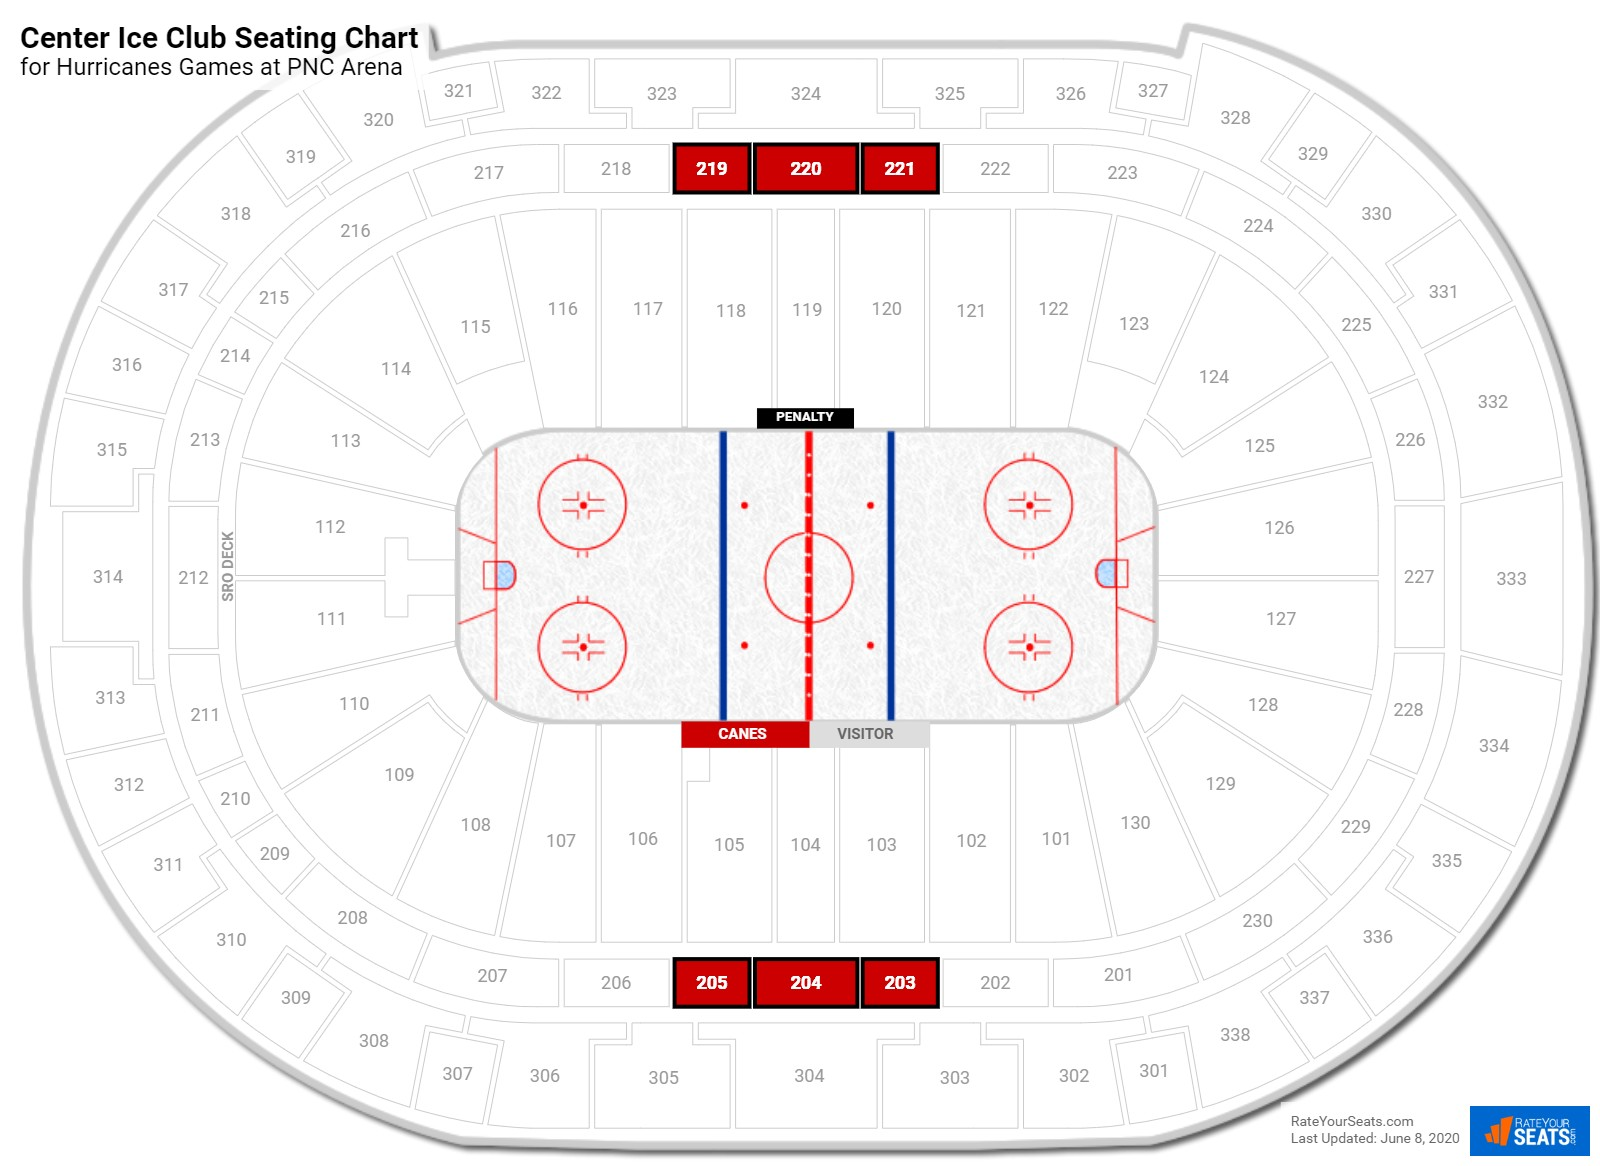 PNC Arena Center Ice Club seating chart